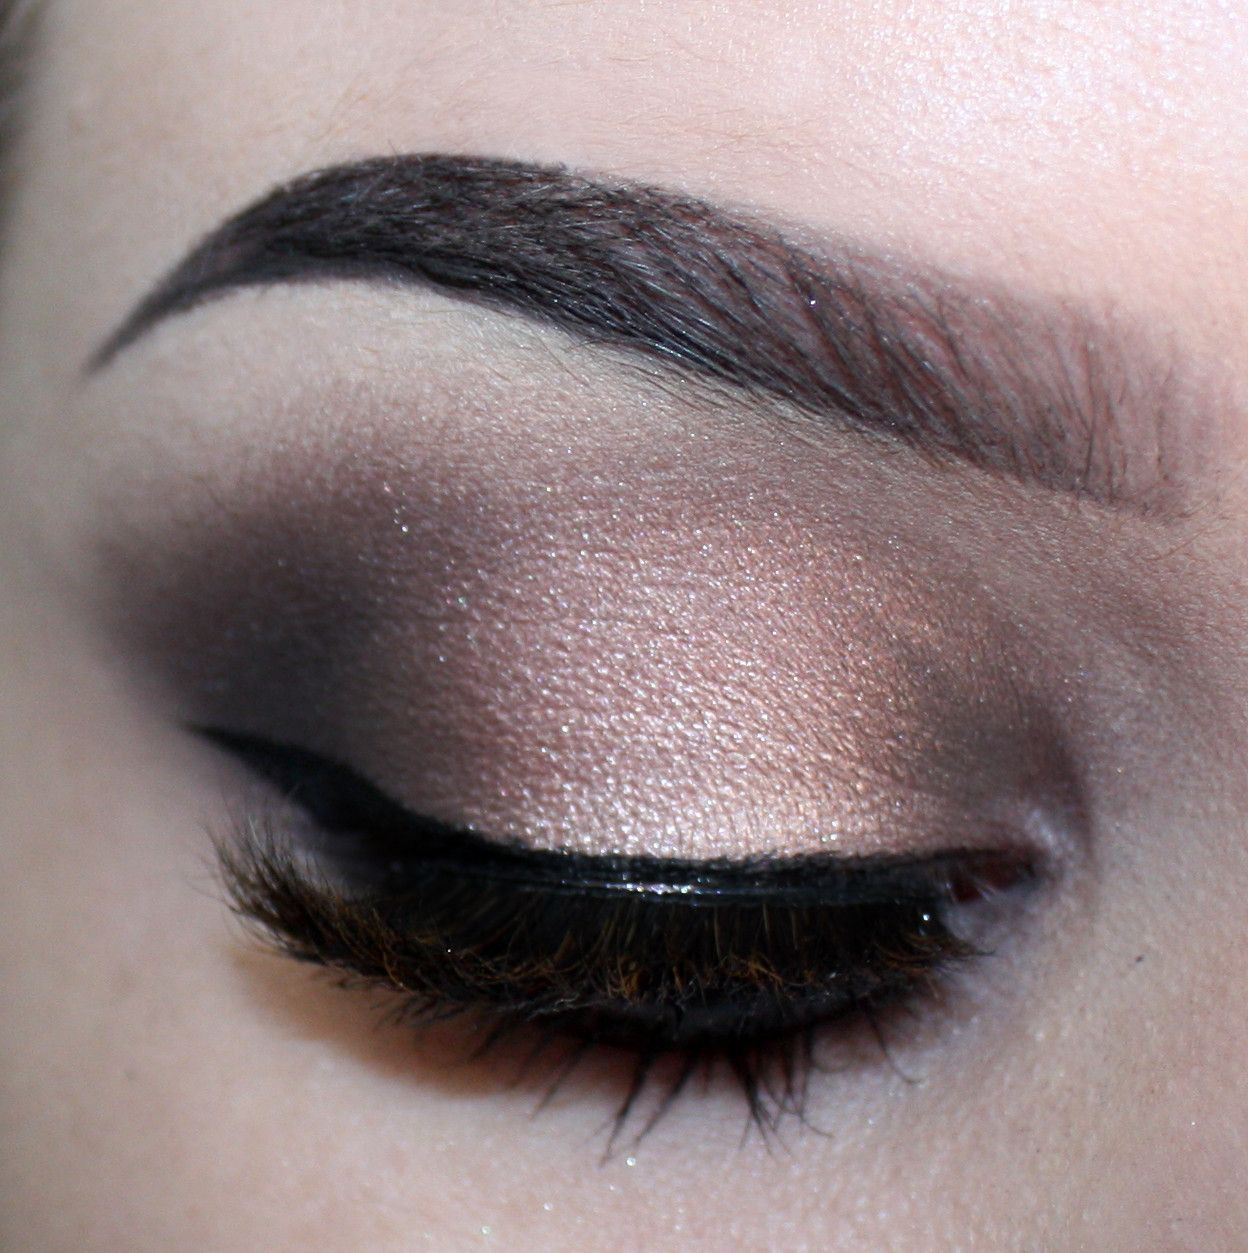 The most awesome images on the Eyeshadow